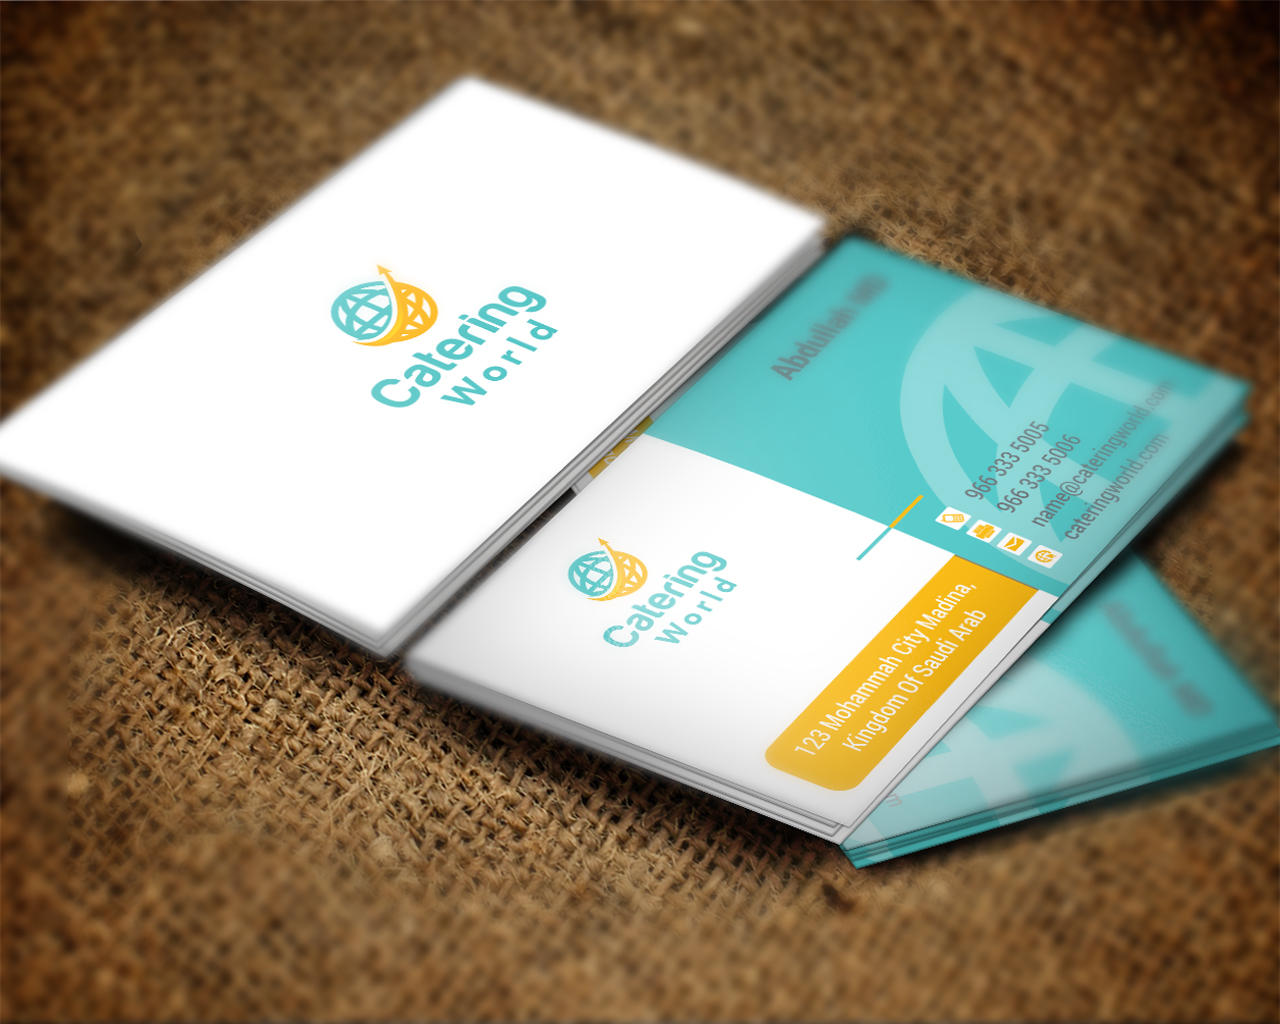 Unique business card design by shujaktk on envato studio unique business card design colourmoves